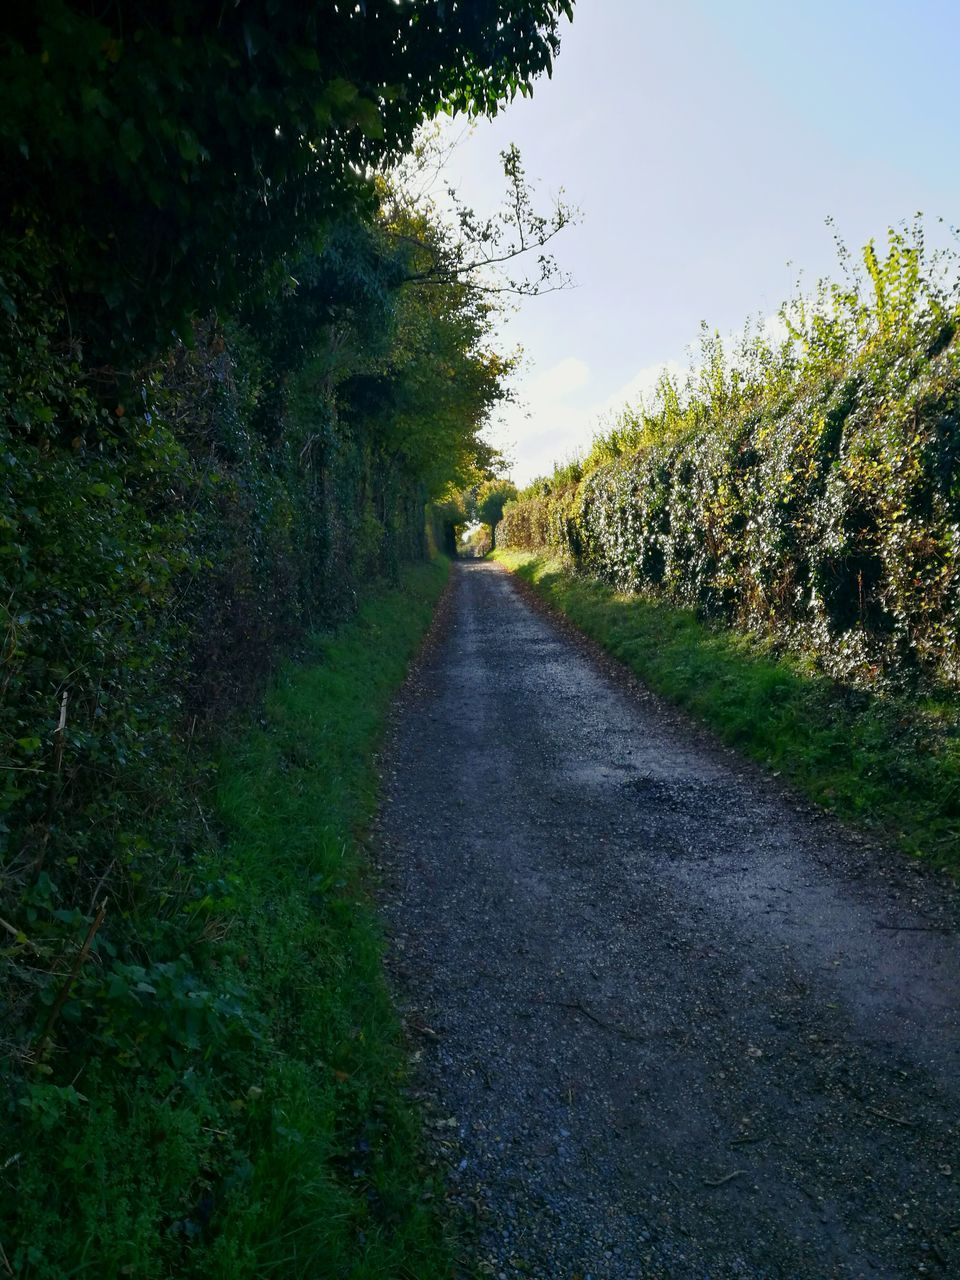 the way forward, diminishing perspective, tree, road, nature, day, no people, tranquility, growth, tranquil scene, grass, outdoors, landscape, scenics, beauty in nature, sky